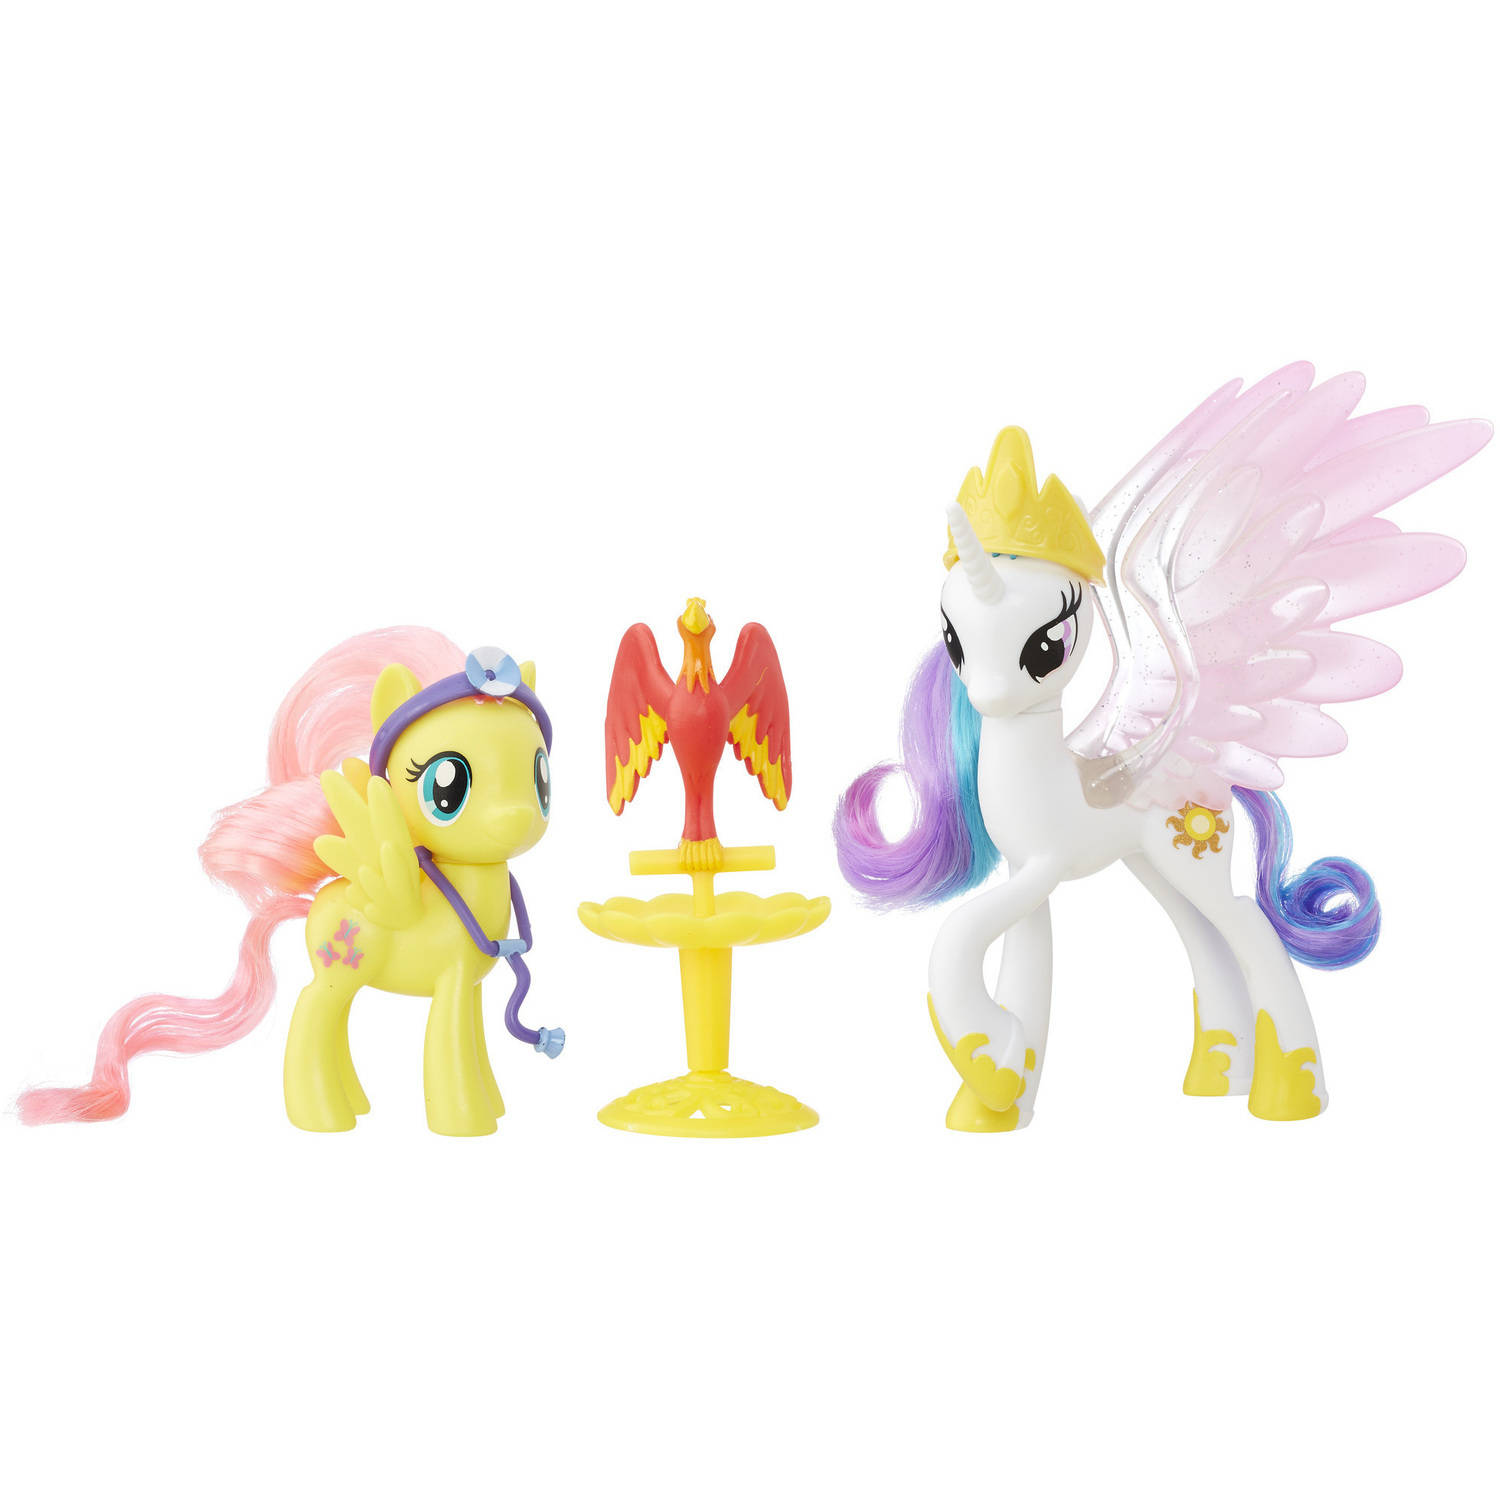 My Little Pony Friendship Pack Princess Celestia and Fluttershy by Hasbro